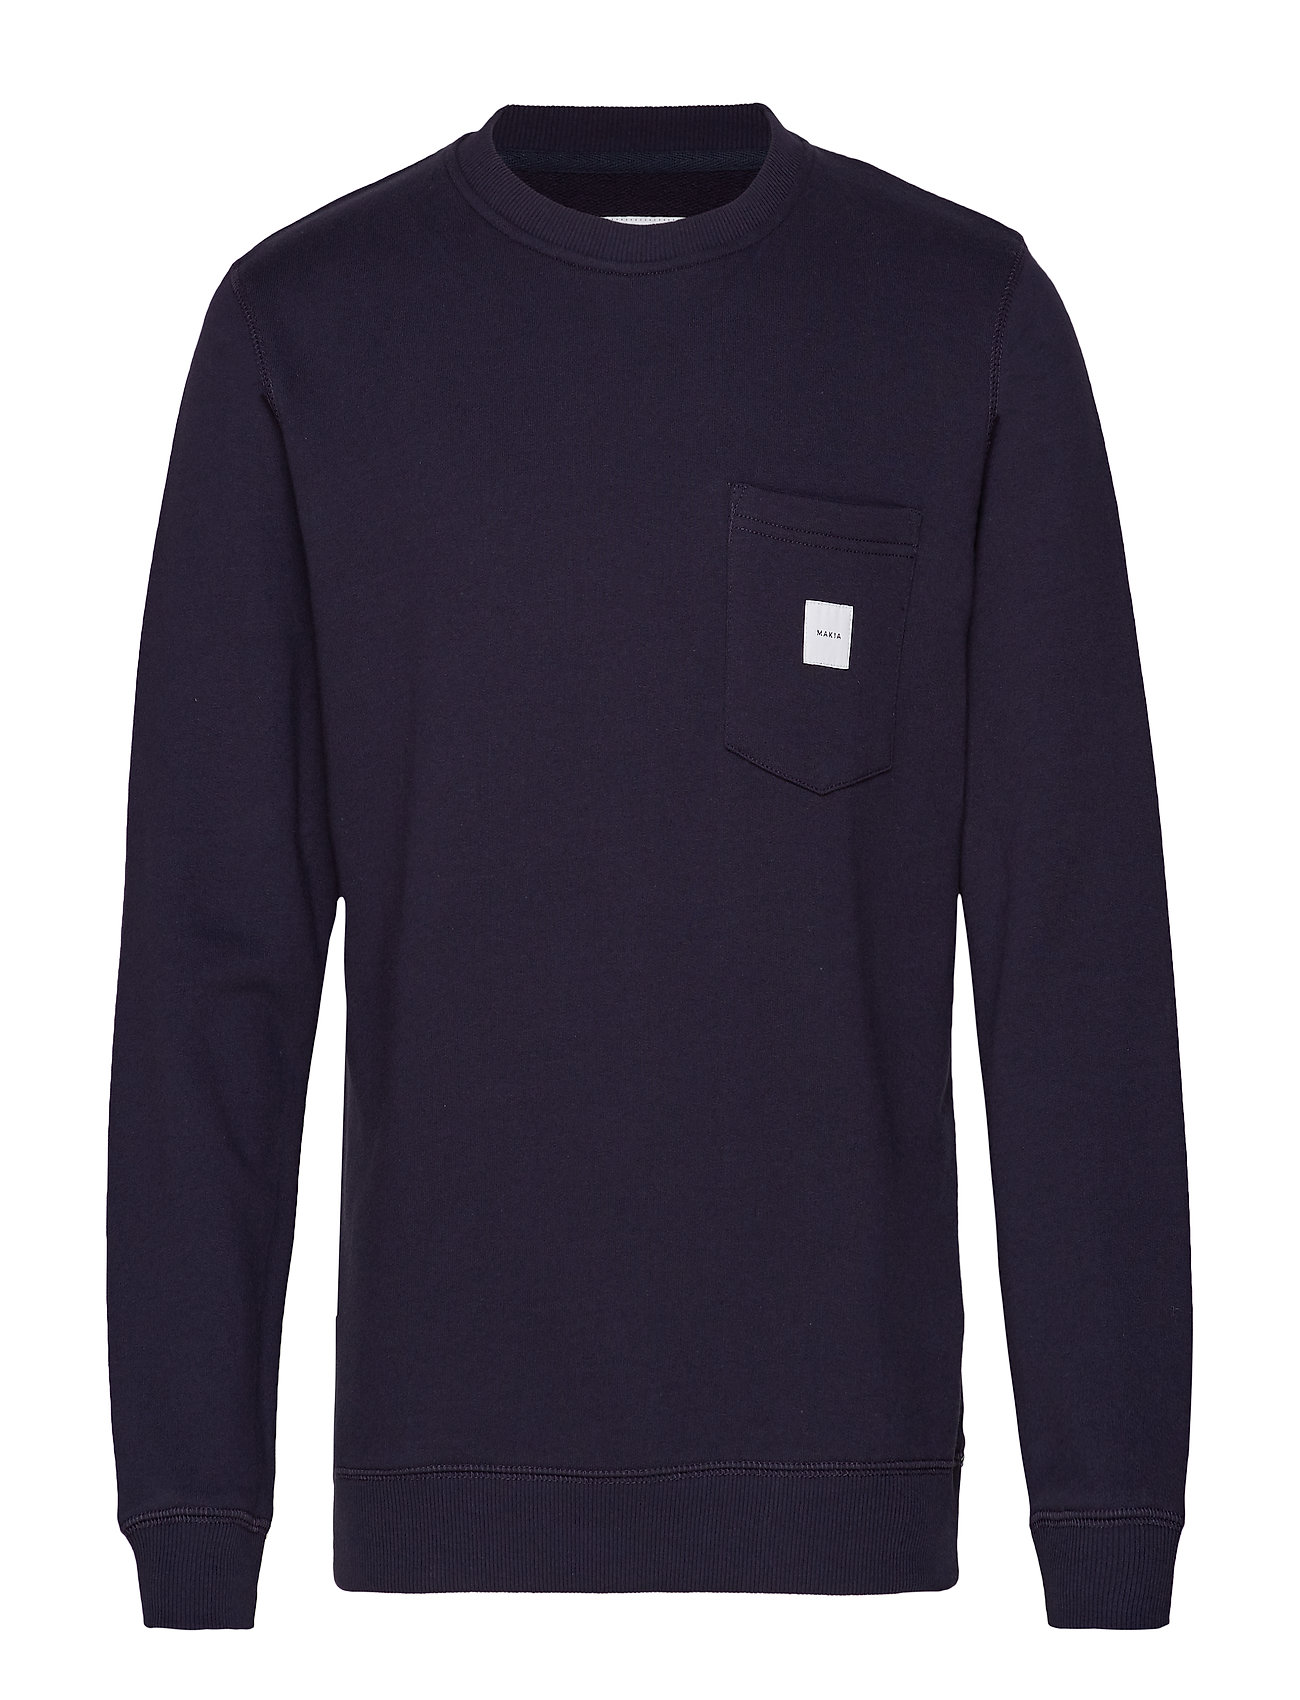 Makia SQUARE POCKET SWEATSHIRT - DARK BLUE